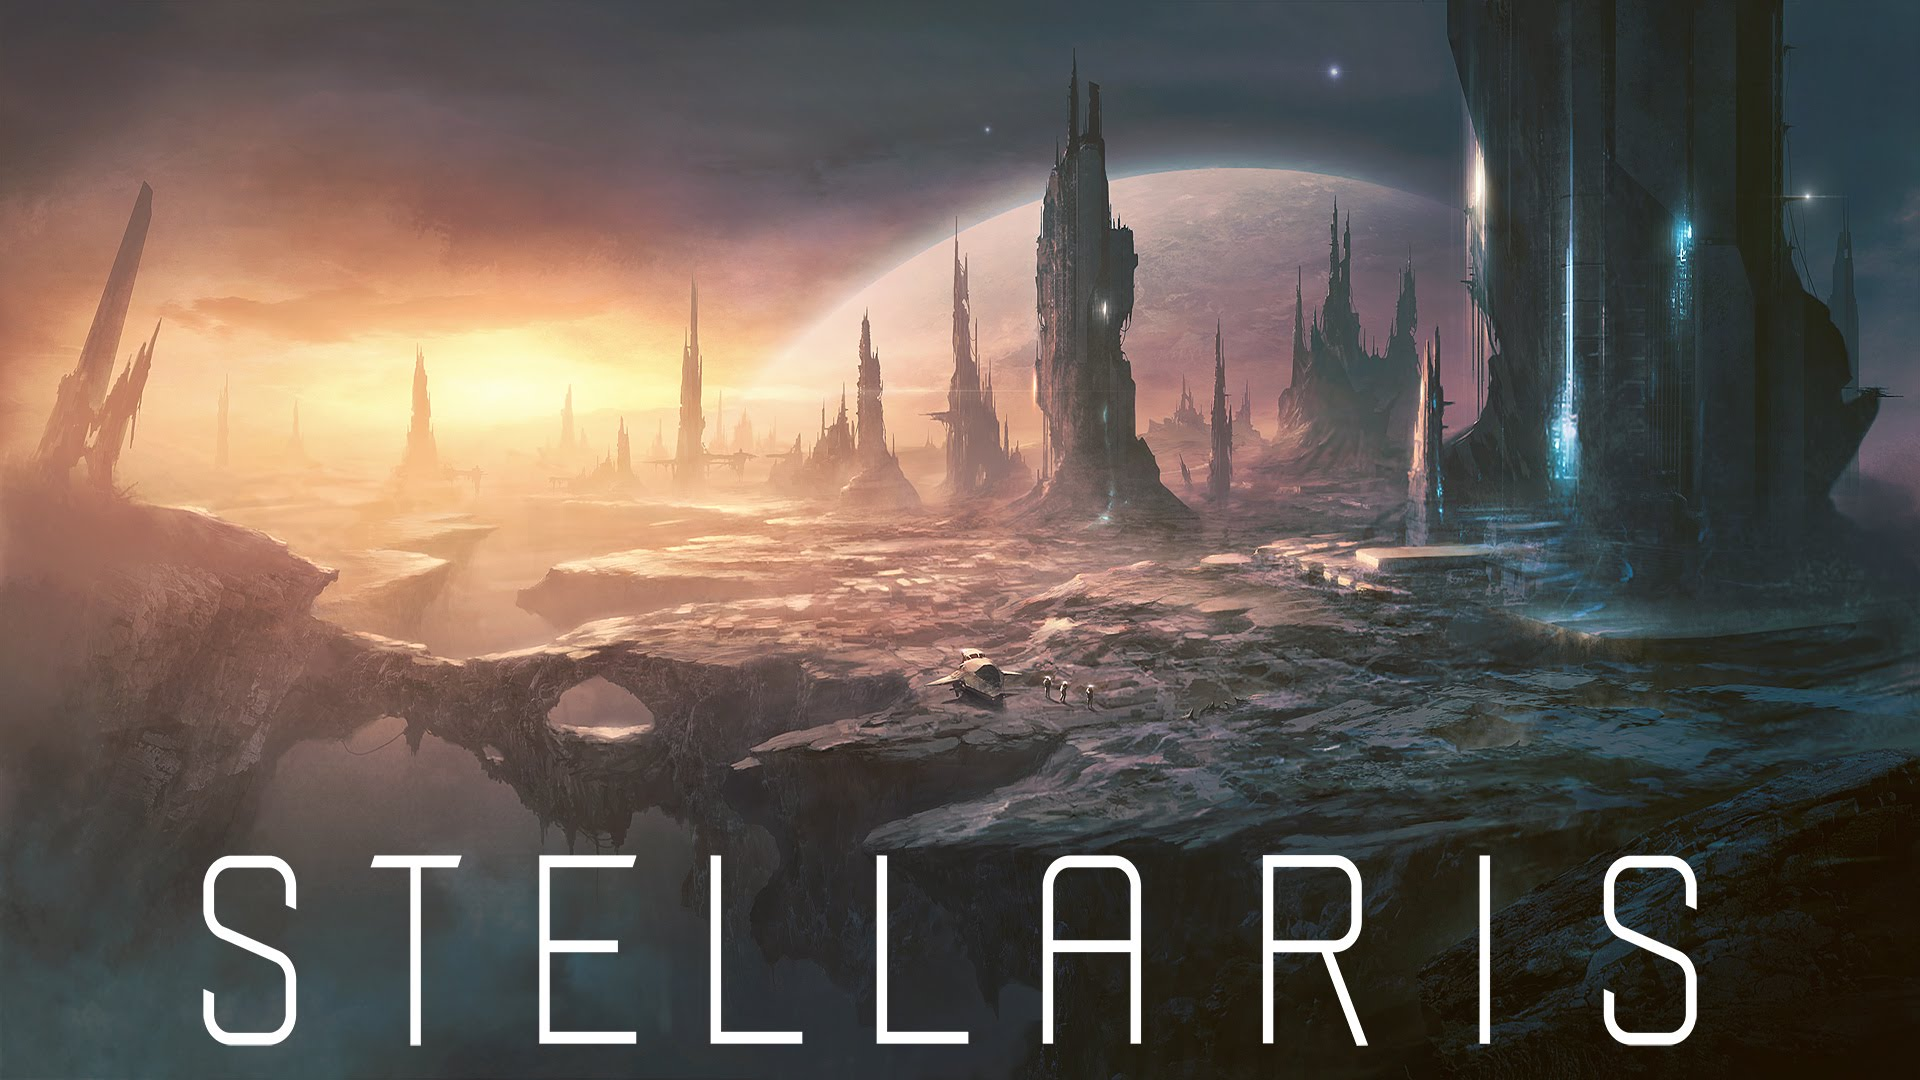 stellaris in space they hear me scream play3r